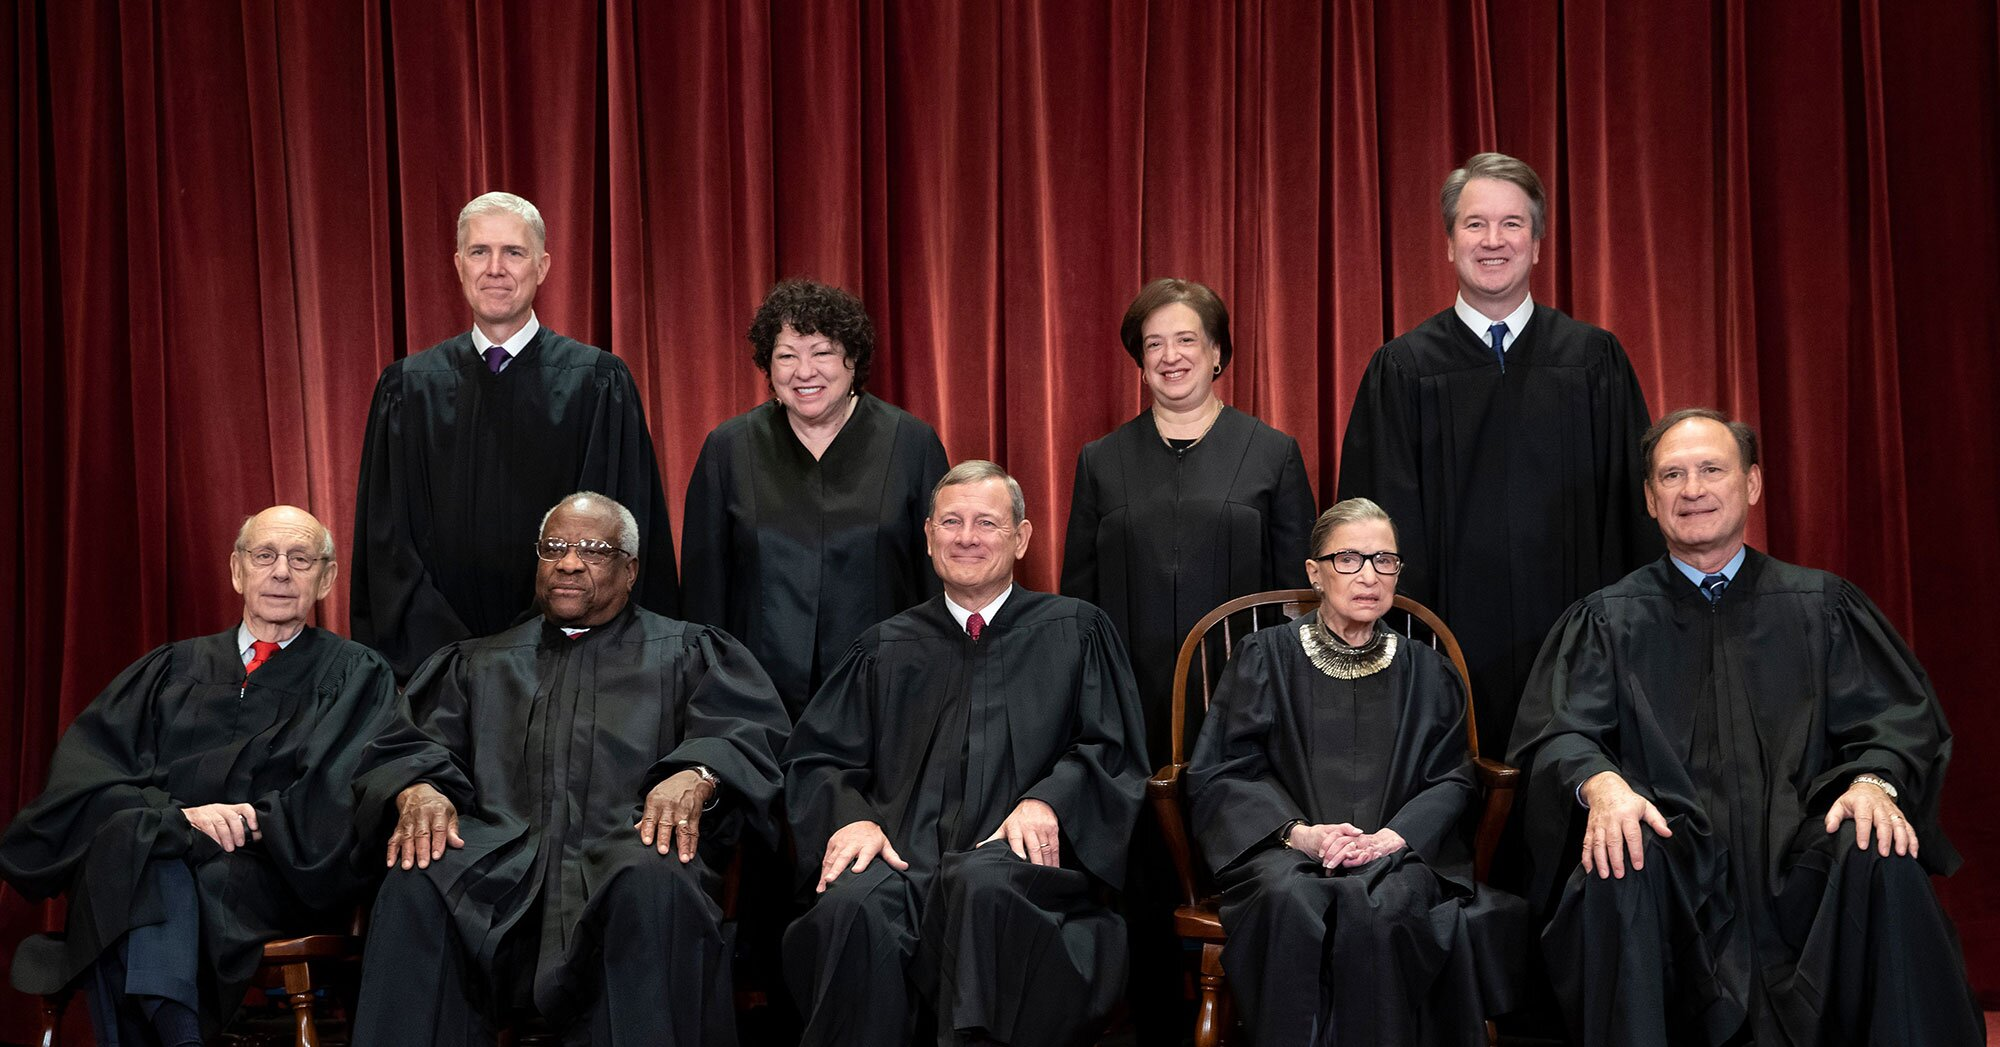 All the Supreme Court Justices Share Heartfelt Tributes to 'Dear Friend' Ruth Bader Ginsburg